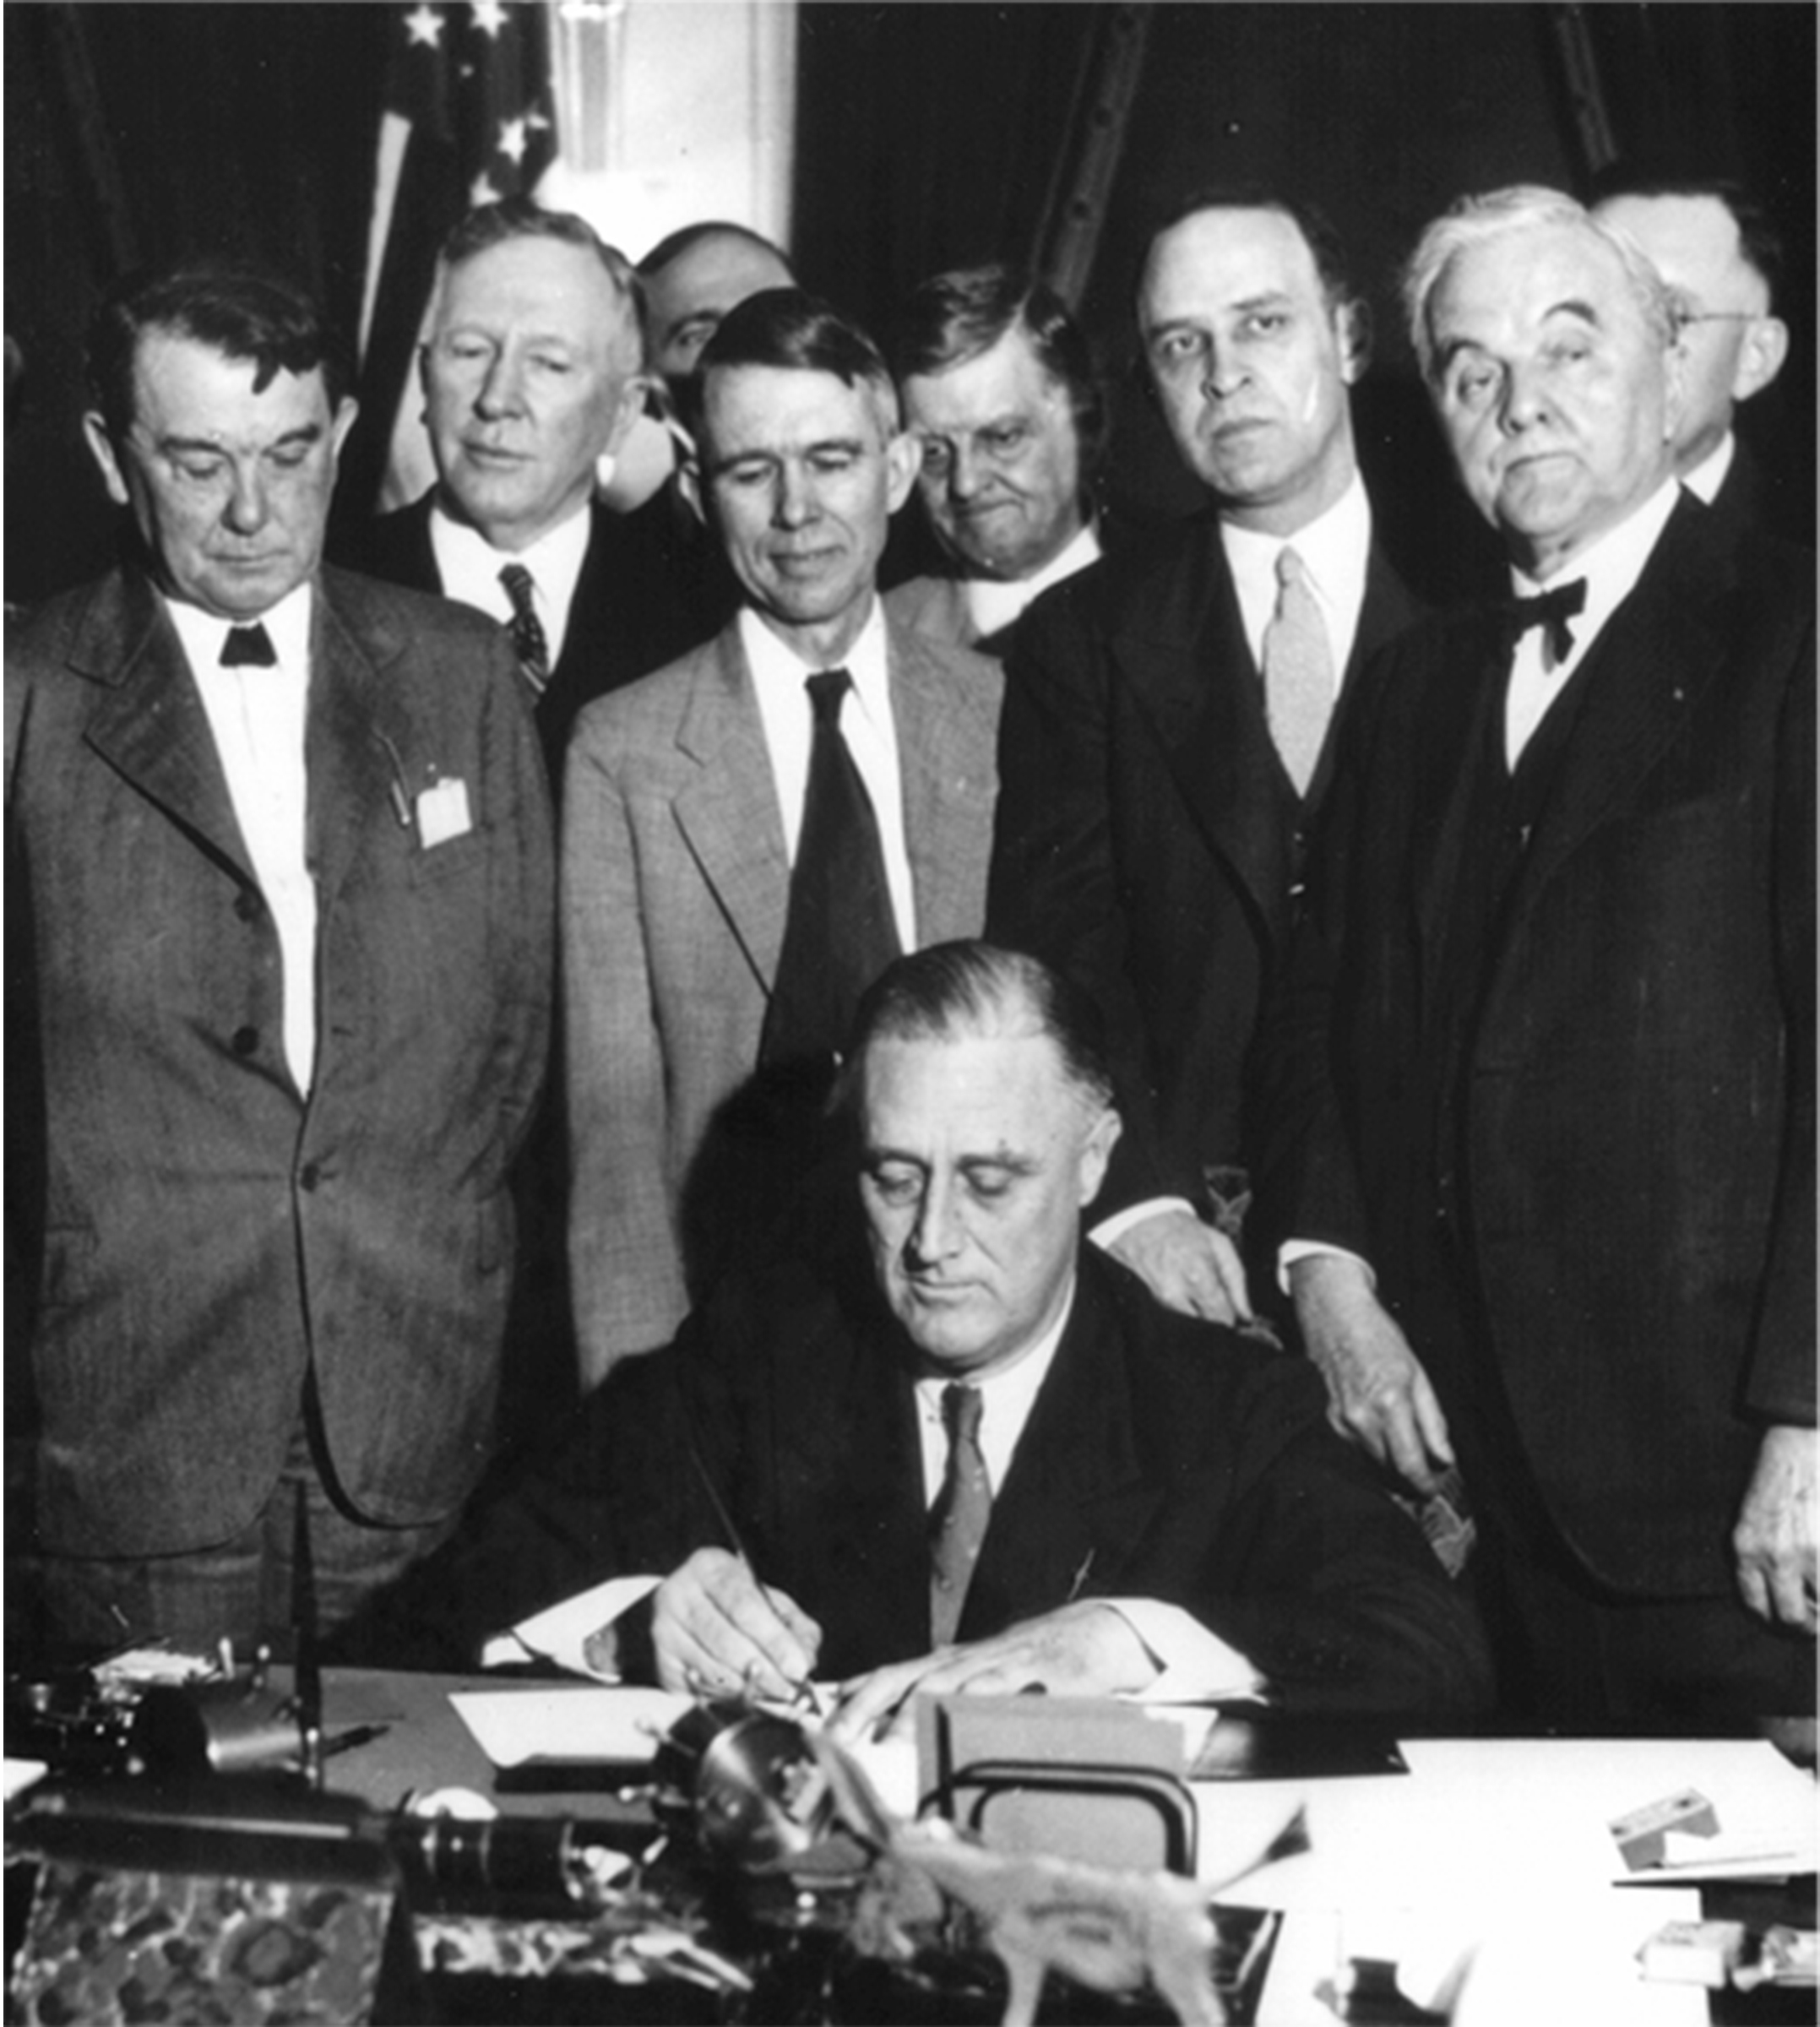 President Franklin D. Roosevelt signing the TVA Act (1933)